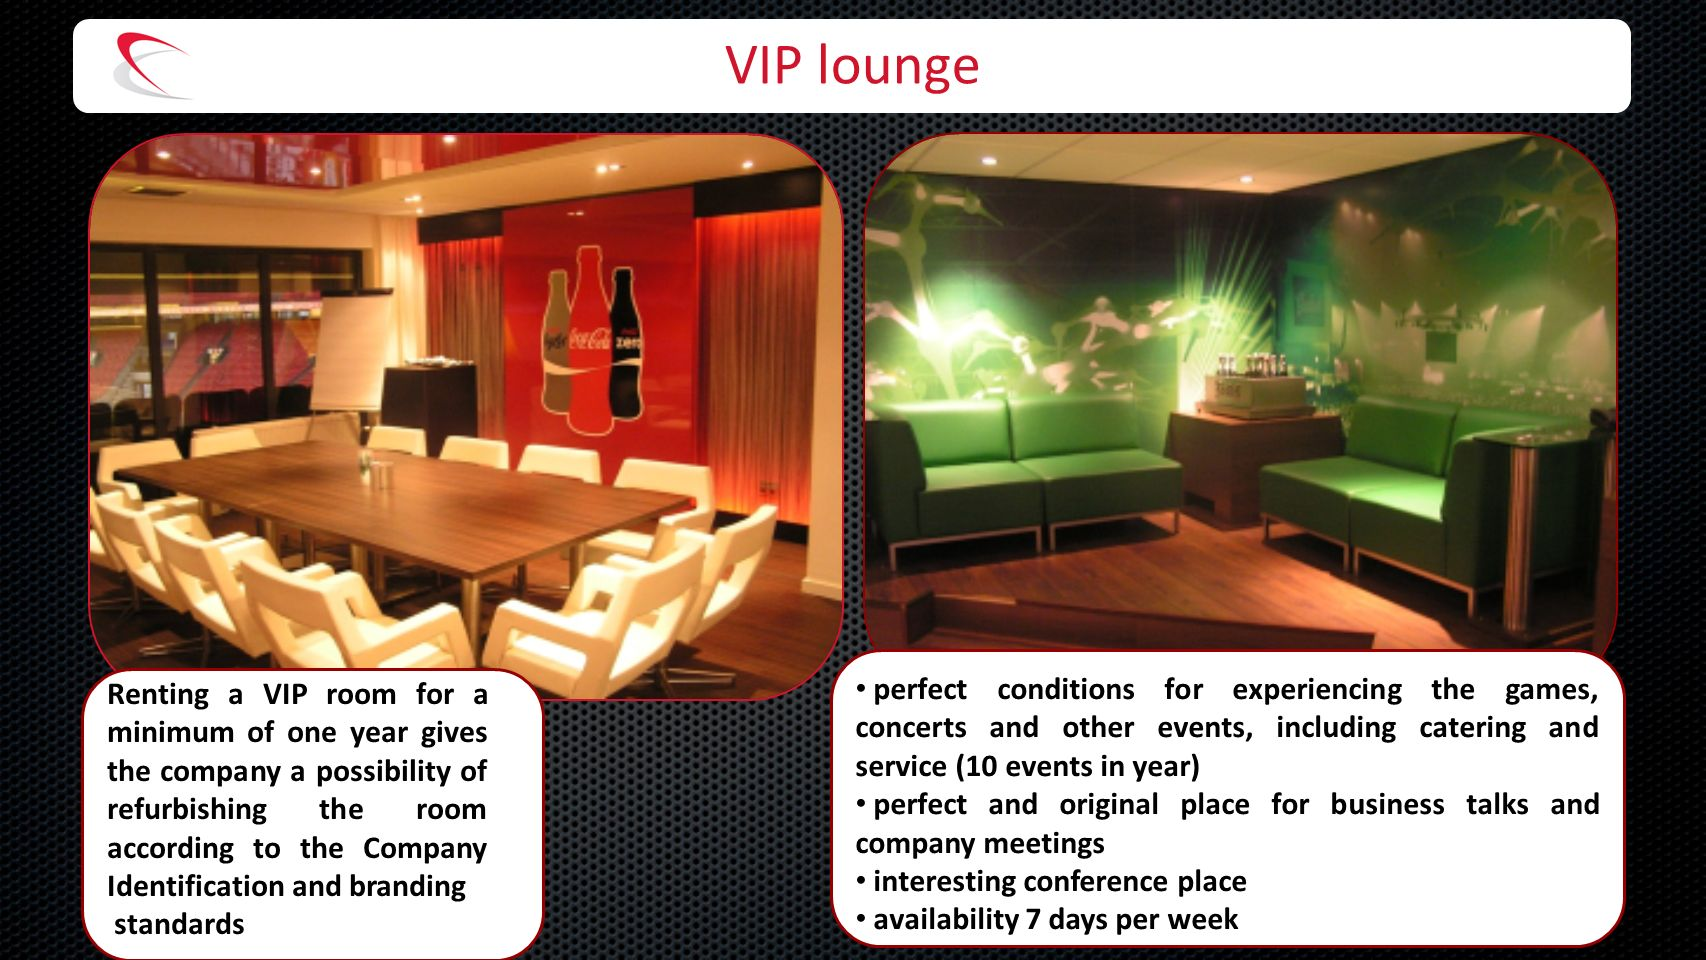 VIP lounge Renting a VIP room for a minimum of one year gives the company a possibility of refurbishing the room according to the Company Identification and branding standards perfect conditions for experiencing the games, concerts and other events, including catering and service (10 events in year) perfect and original place for business talks and company meetings interesting conference place availability 7 days per week